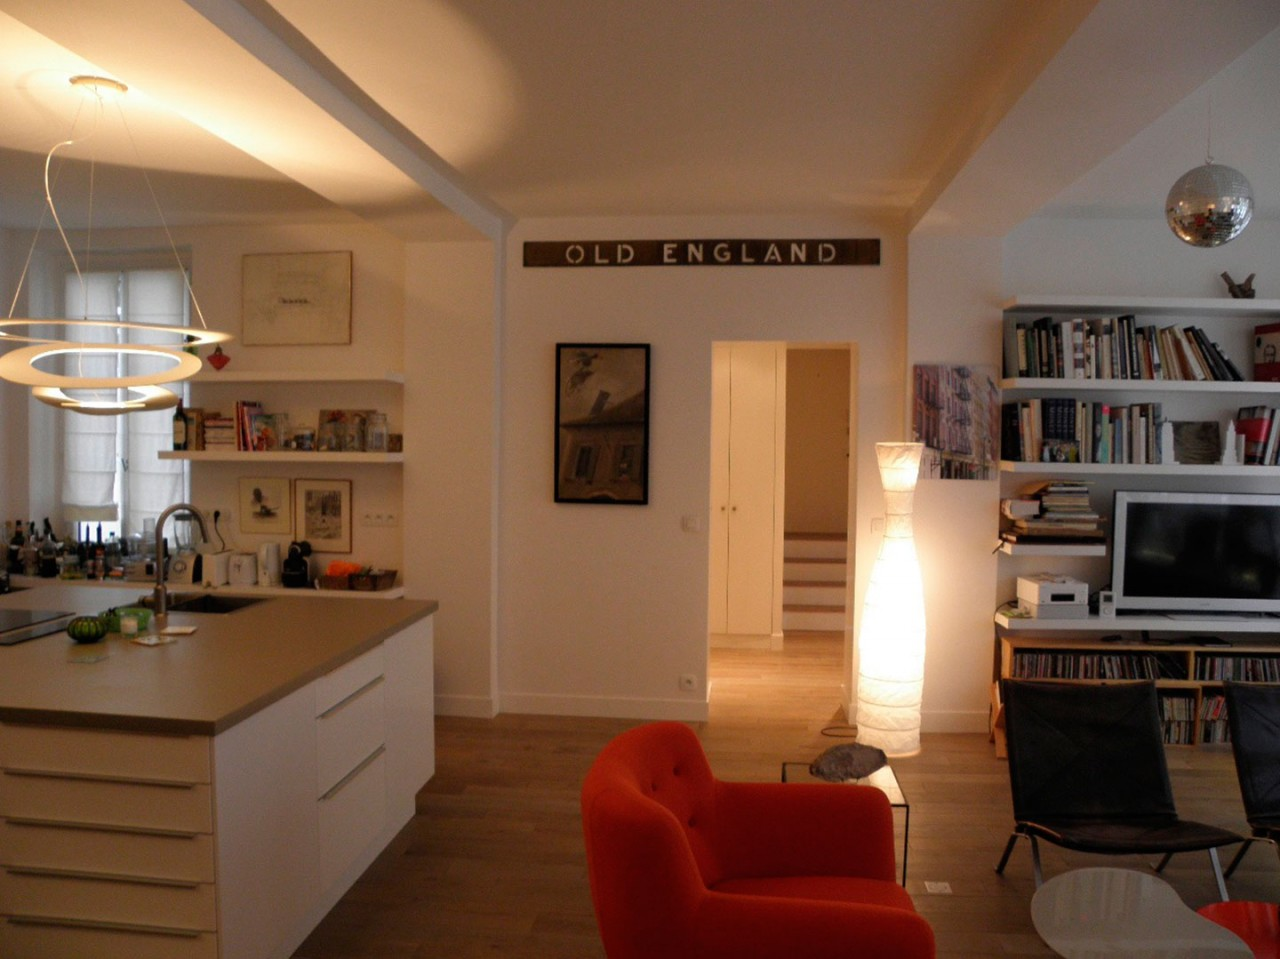 COLOMBE STEVENS Appartement Paris 13